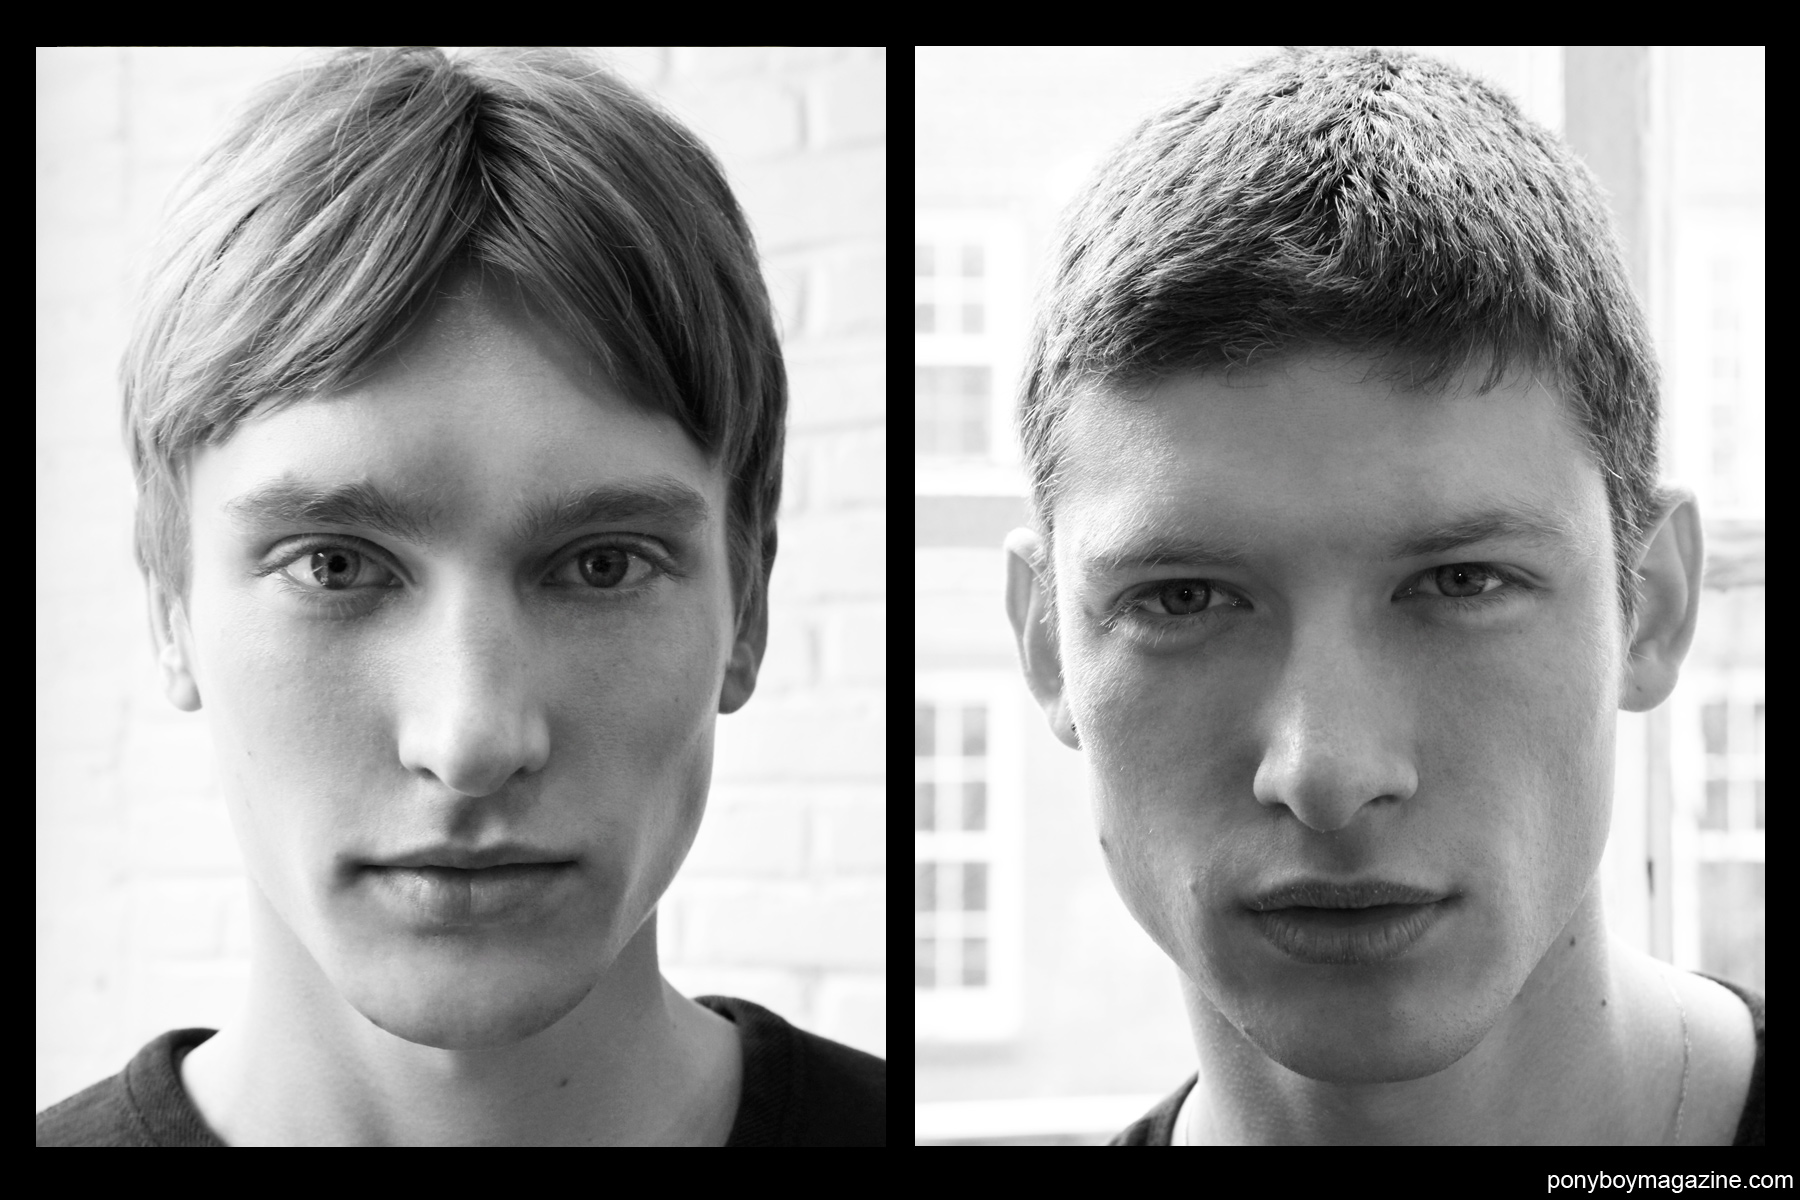 B&W portraits of male models Jeroen Smits and Gleb Haradkou, backstage at Duckie Brown F/W15 collection at Industria Studios. Photographs by Alexander Thompson for Ponyboy magazine.